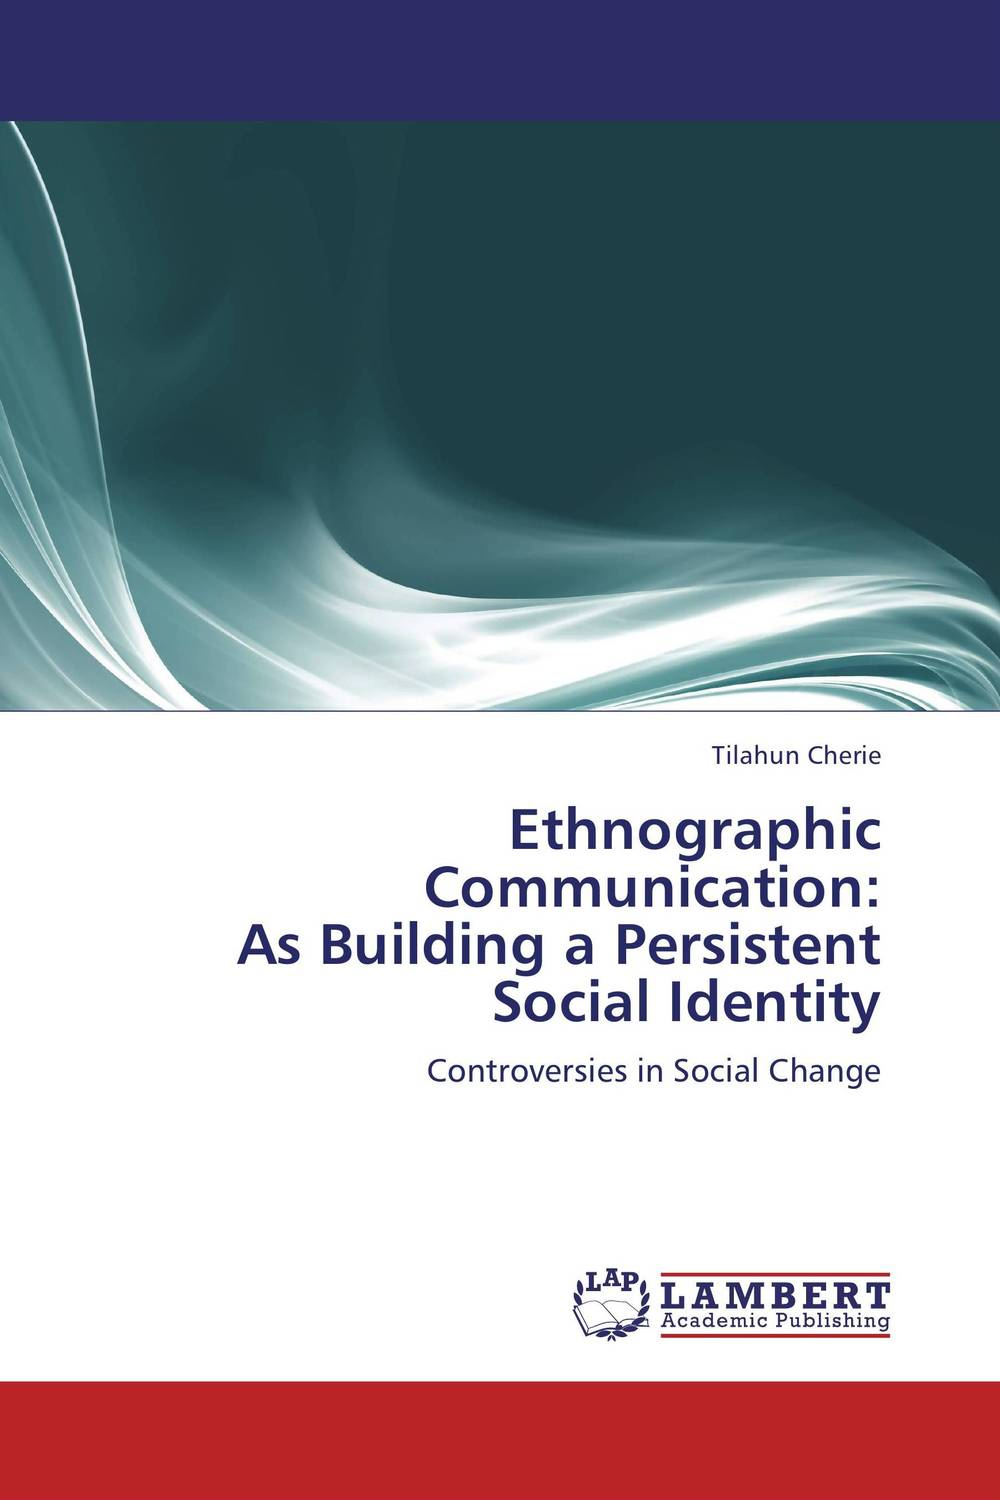 Ethnographic Communication:  As Building a Persistent Social Identity re establishing identity